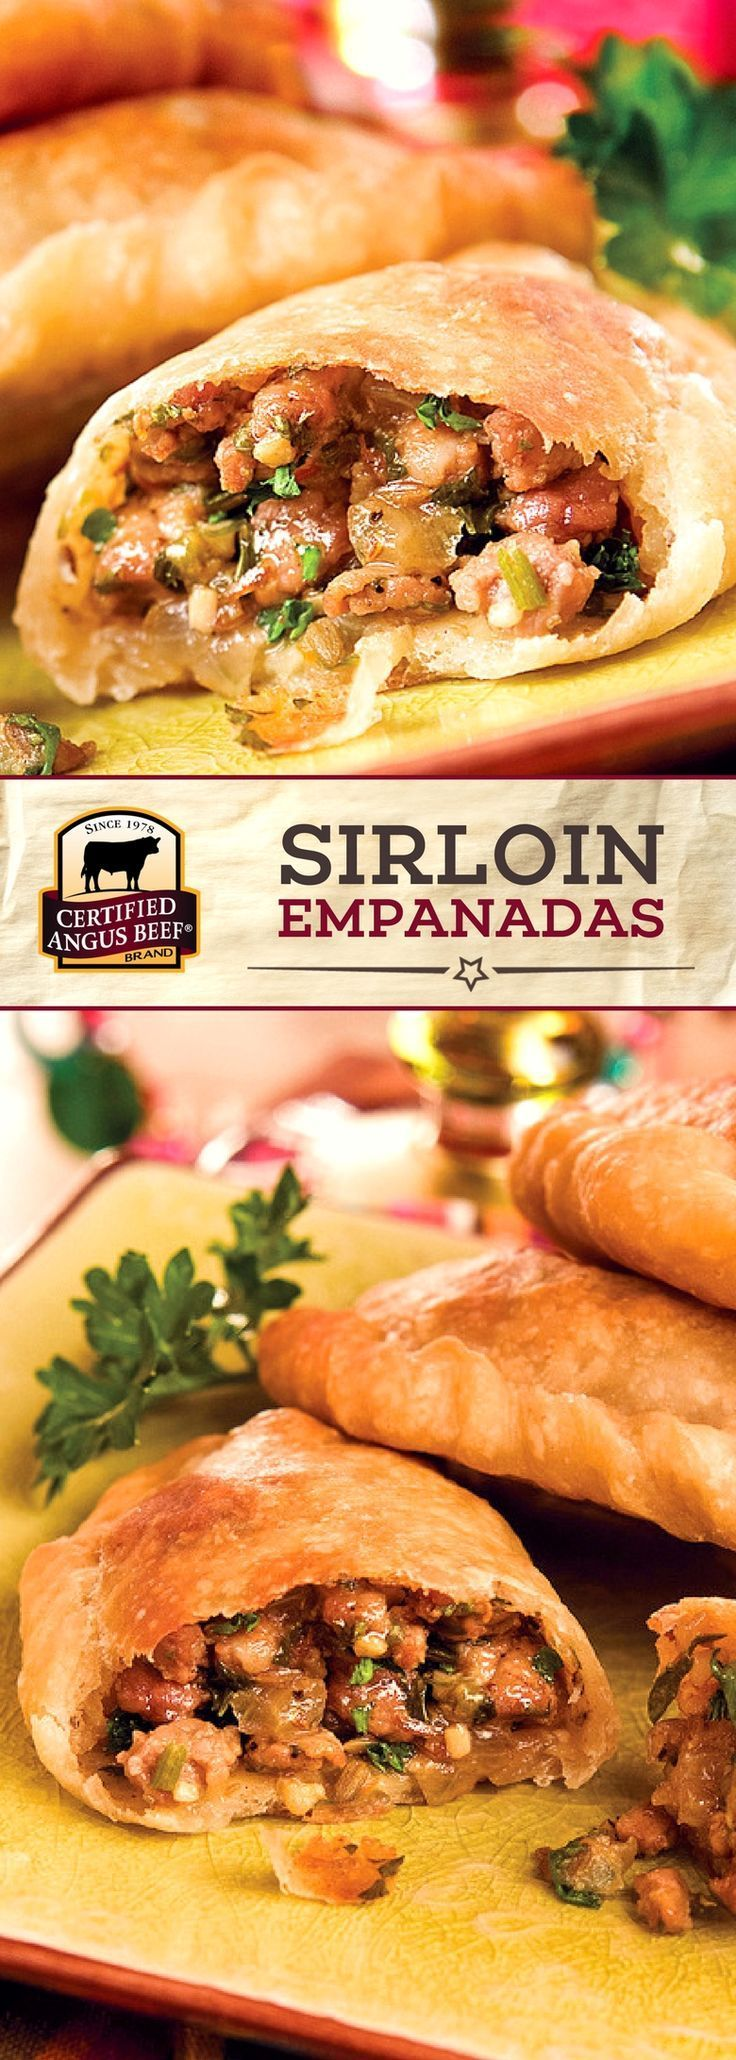 Certified Angus Beef®️️️️️ brand Sirloin Empanadas combines the BEST top sirloin or tri-tip steak with a blend of delicious spices, green chilies, and onion for a TASTY beef recipe! This dish makes a great appetizer recipe or main dish, and is PERFECT for game day!  #bestangusbeef #certifiedangusbeef #beefrecipe #gamedayfood #steakrecipe